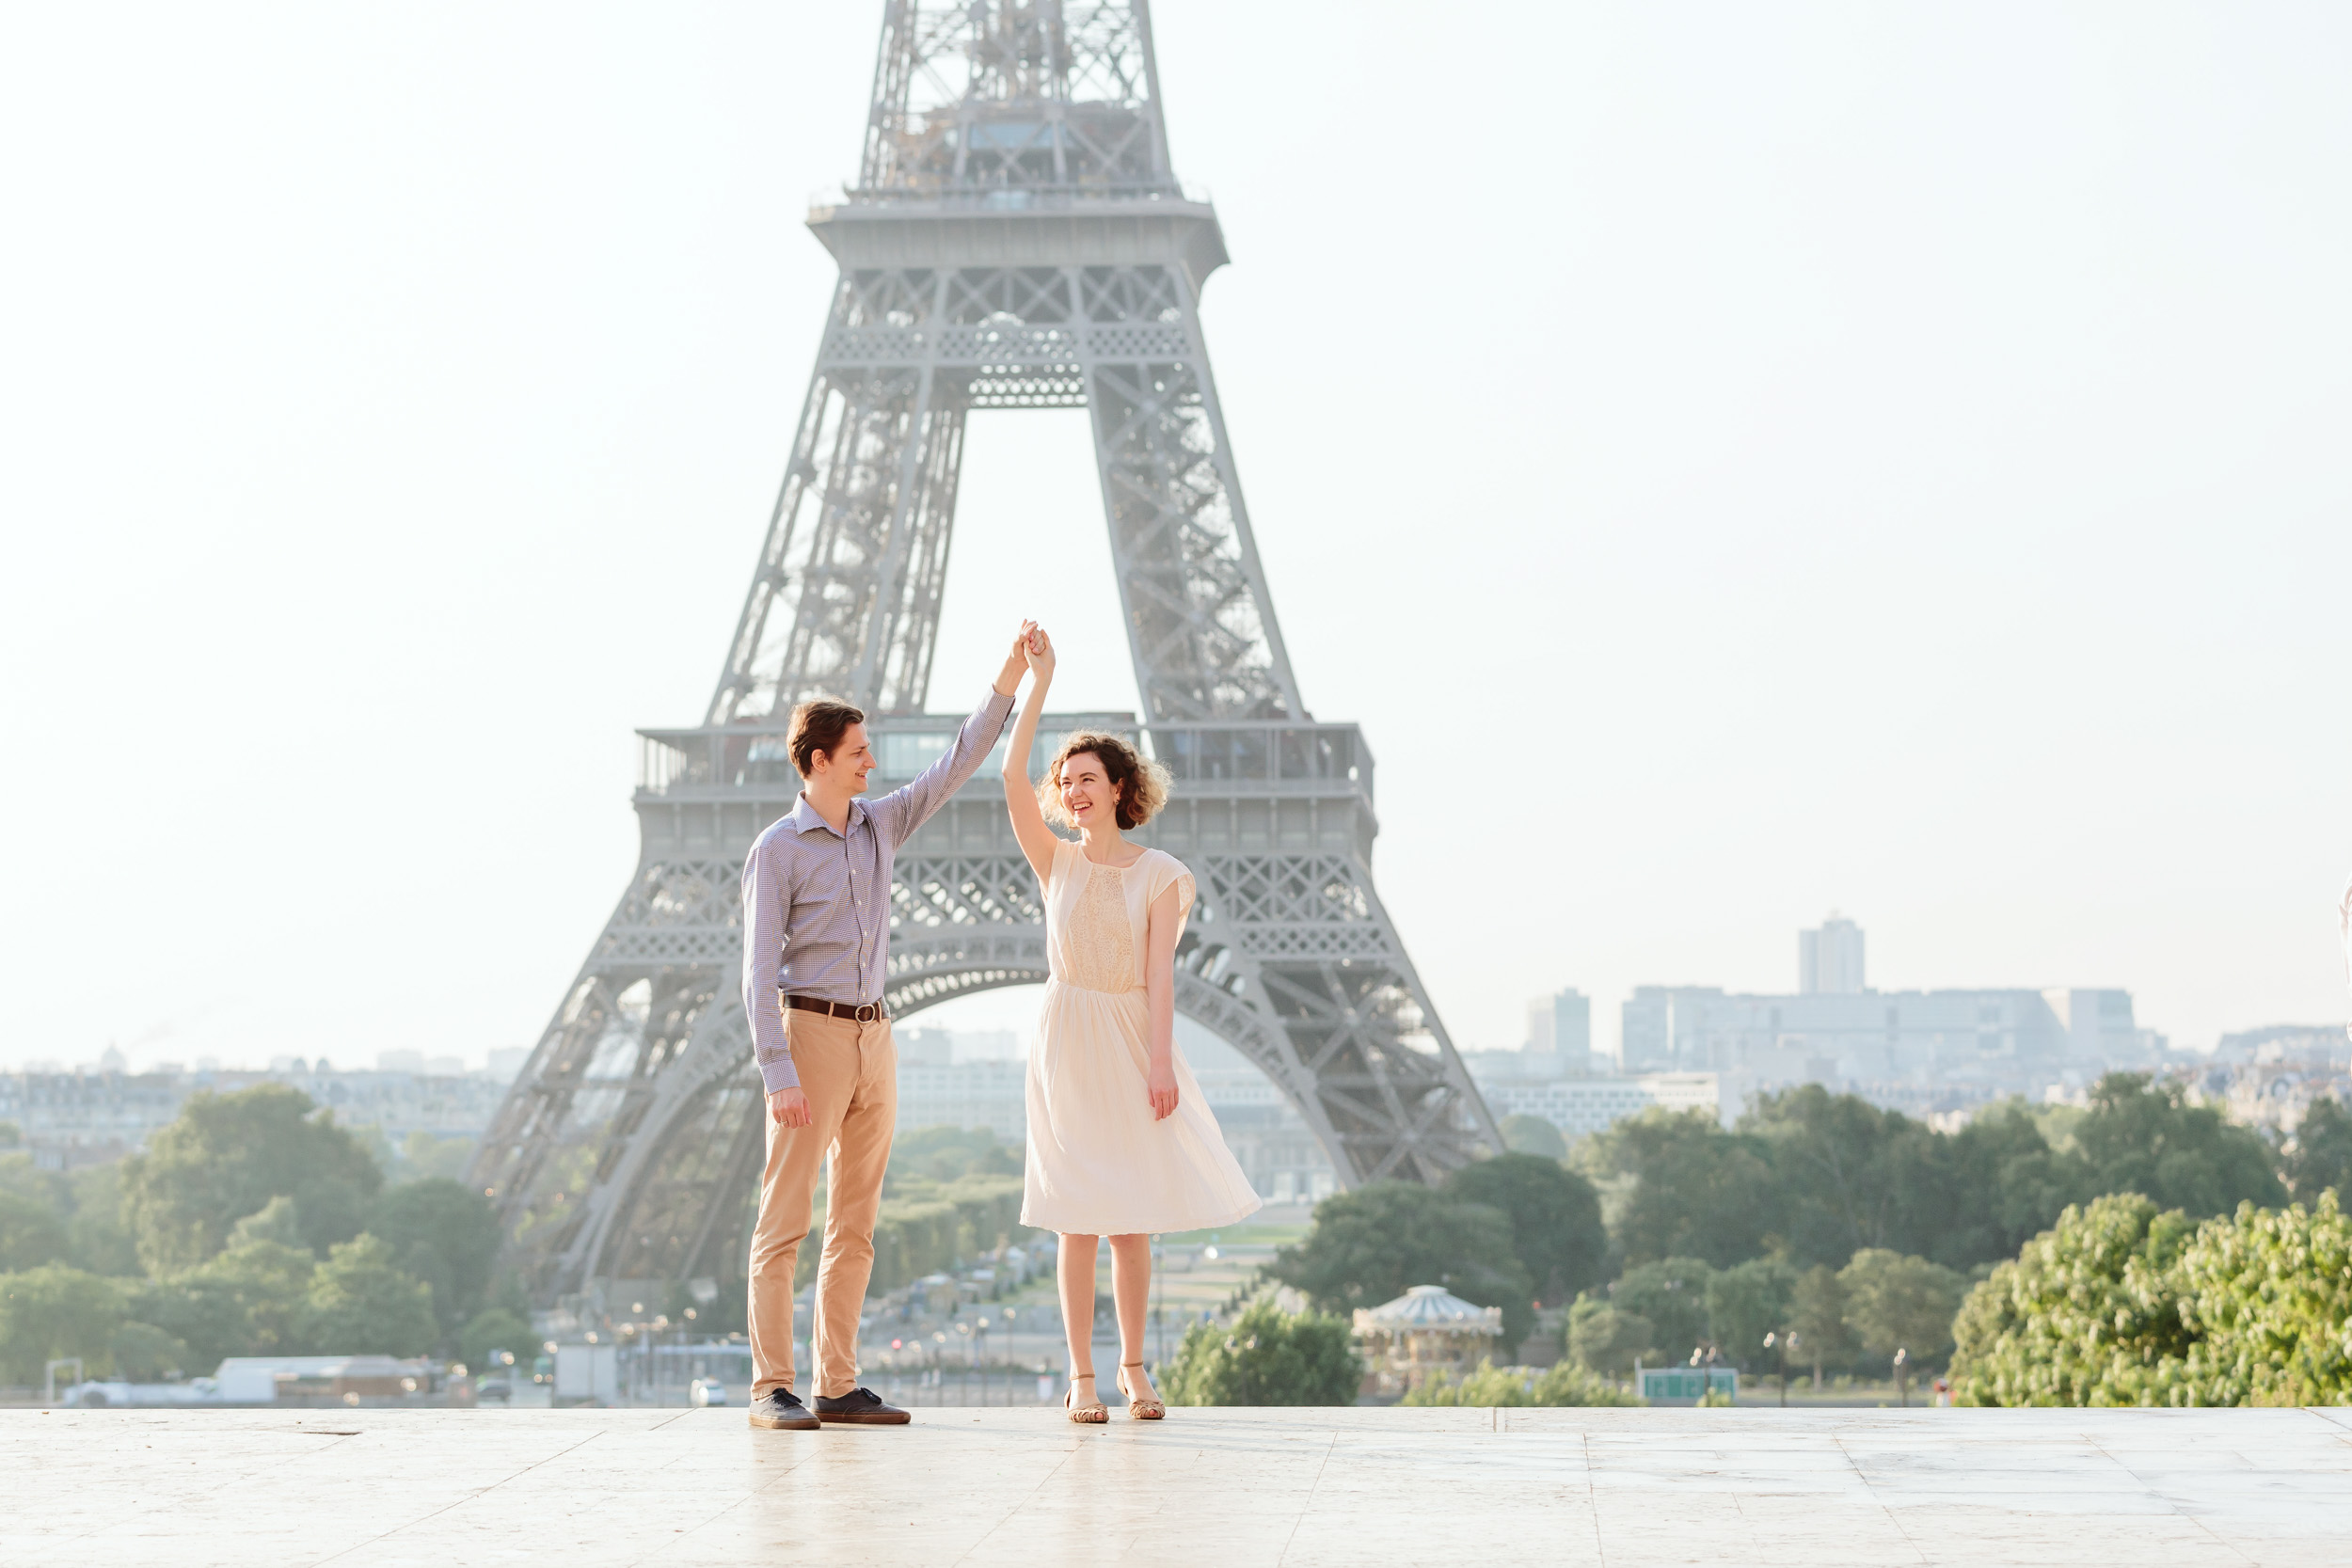 Couple in love dancing at Trocadero by the Eiffel Tower at sunrise captured by Paris Photographer Federico Guendel IheartParisFr